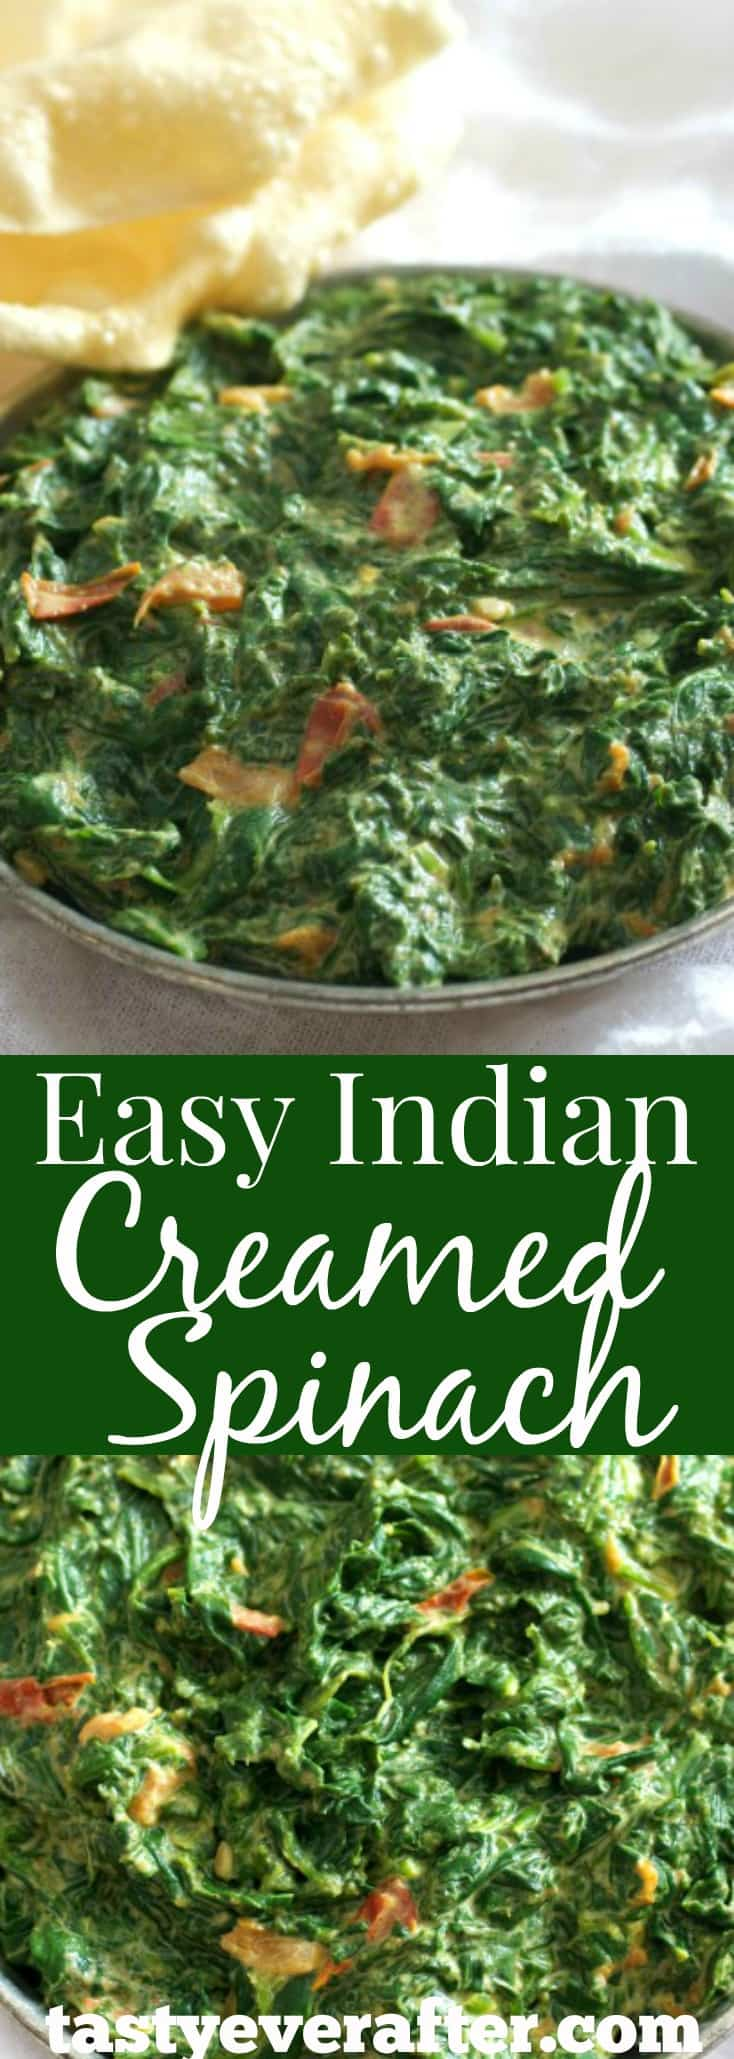 Easy Indian Creamed Spinach